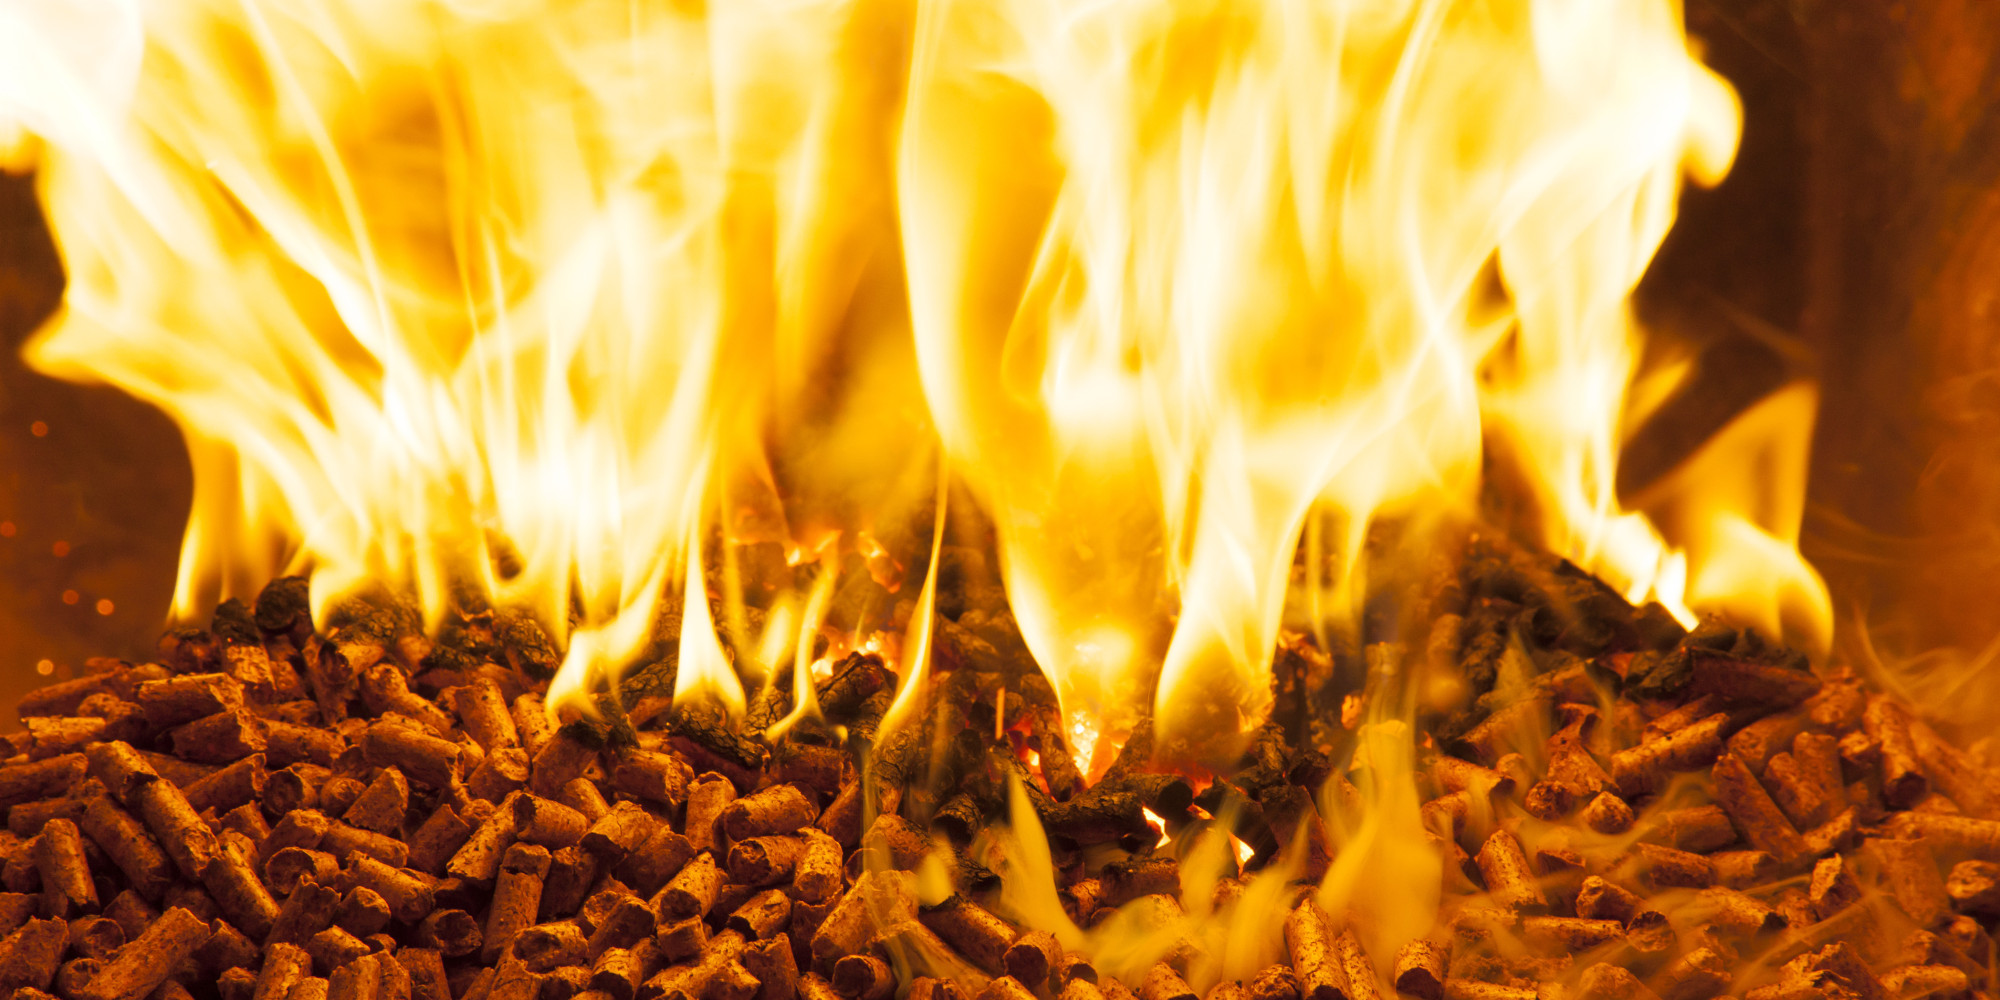 Burning Wood Biomass Pellets ~ Big biomass when burning wood for energy makes sense